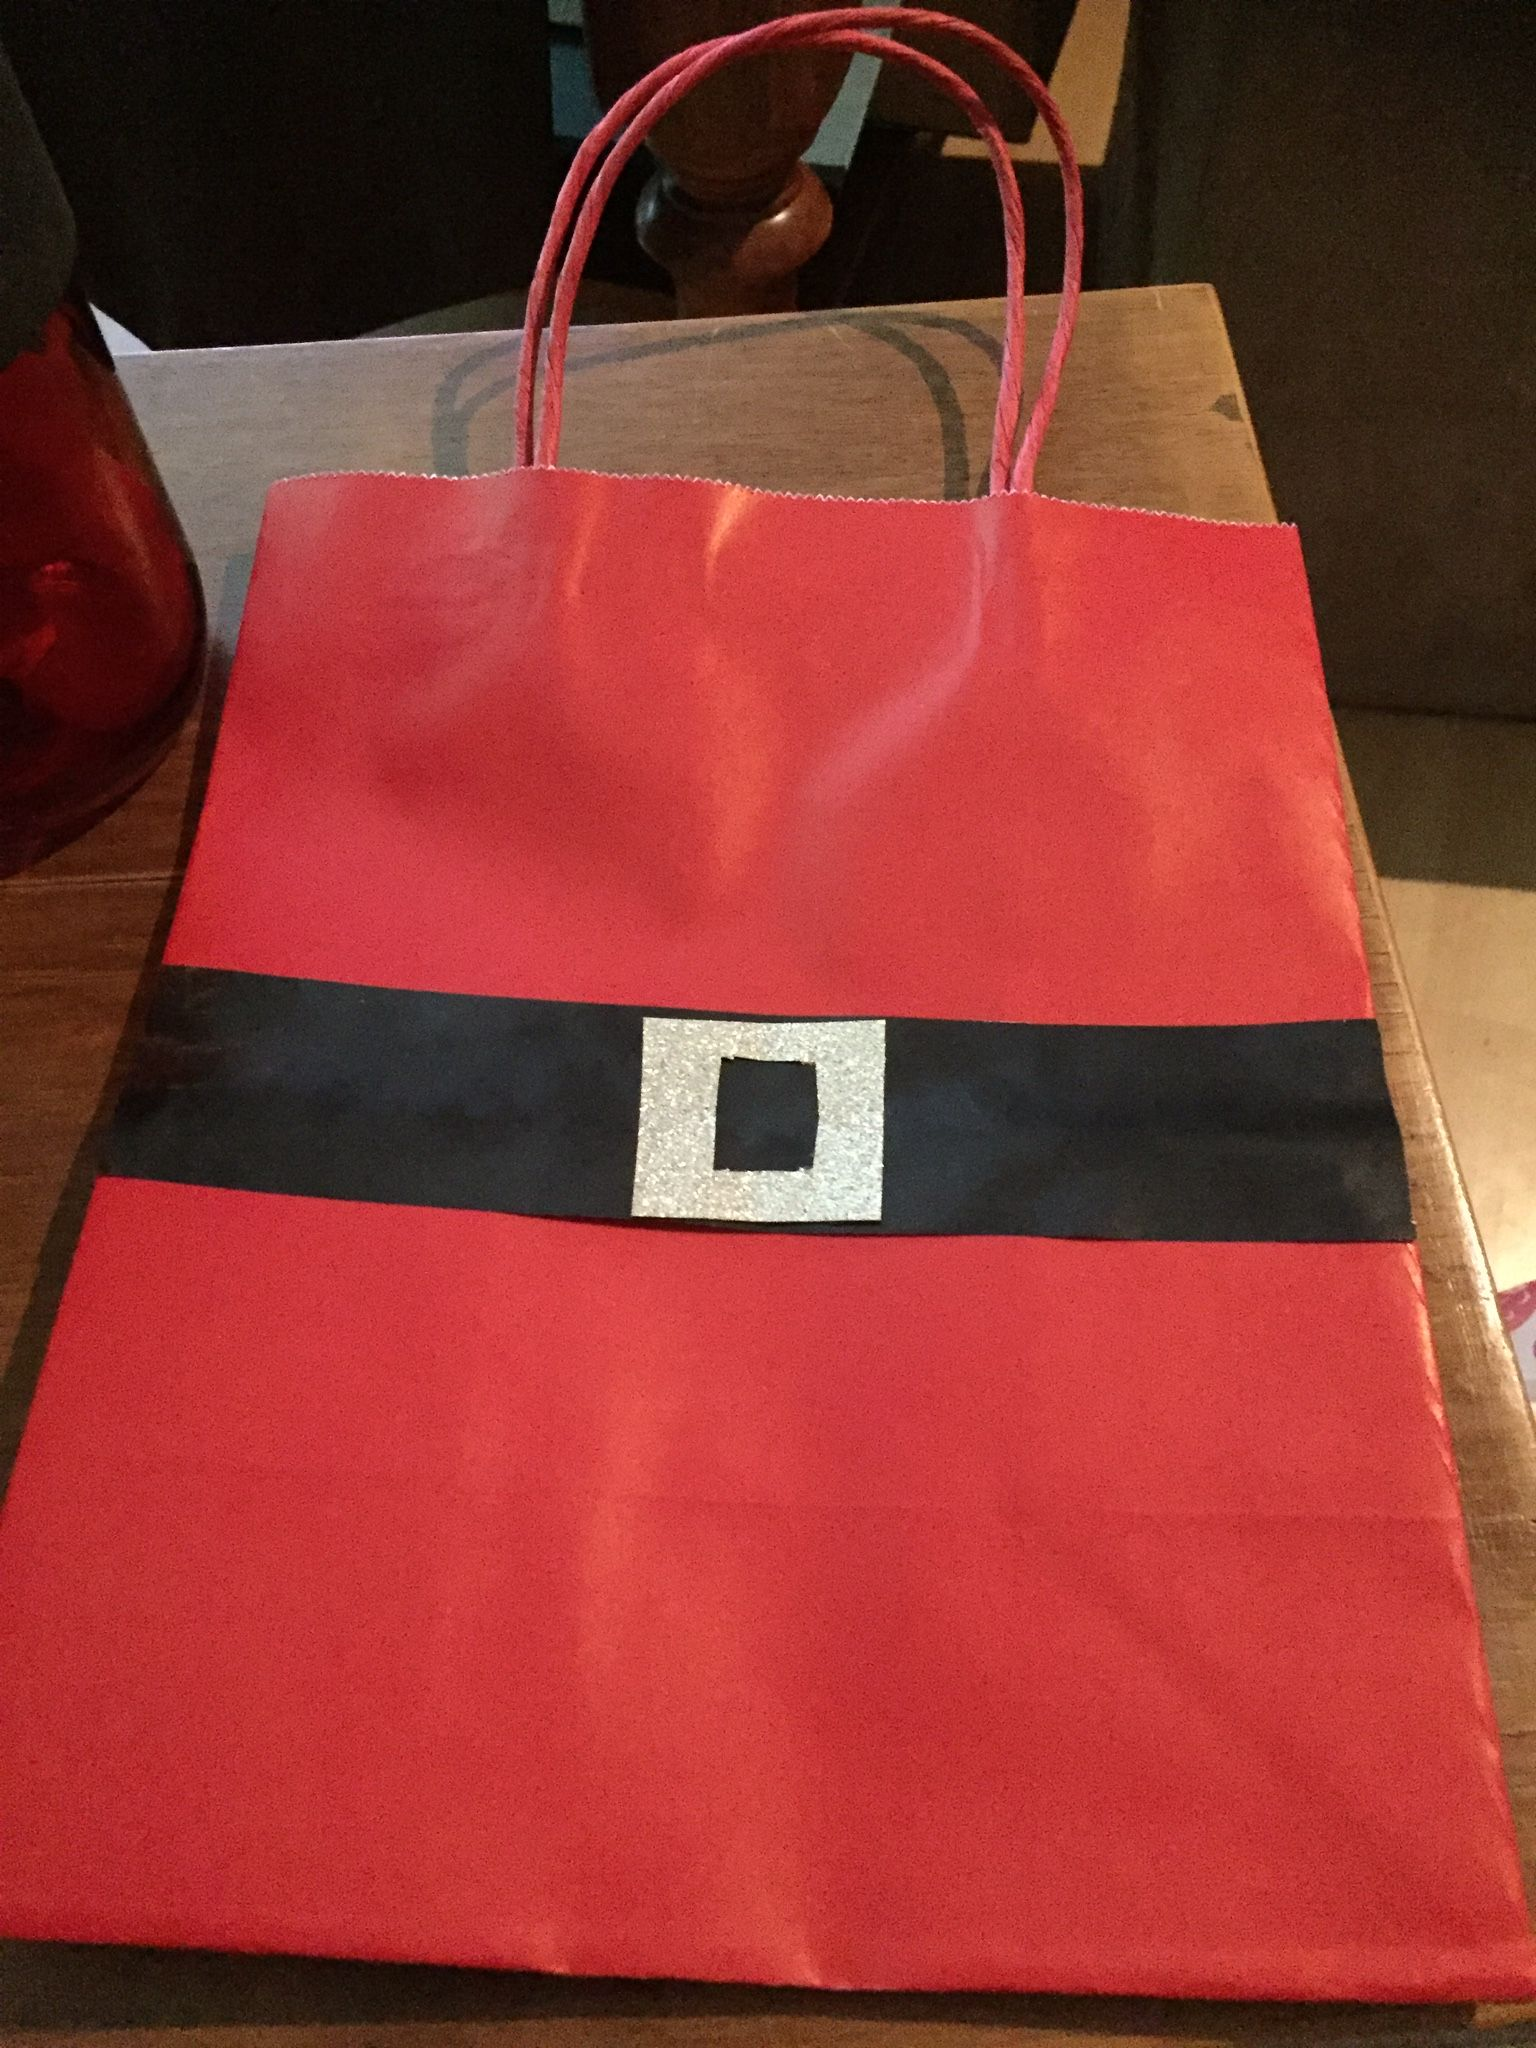 Homemade santa bags very quick to make but effective gift